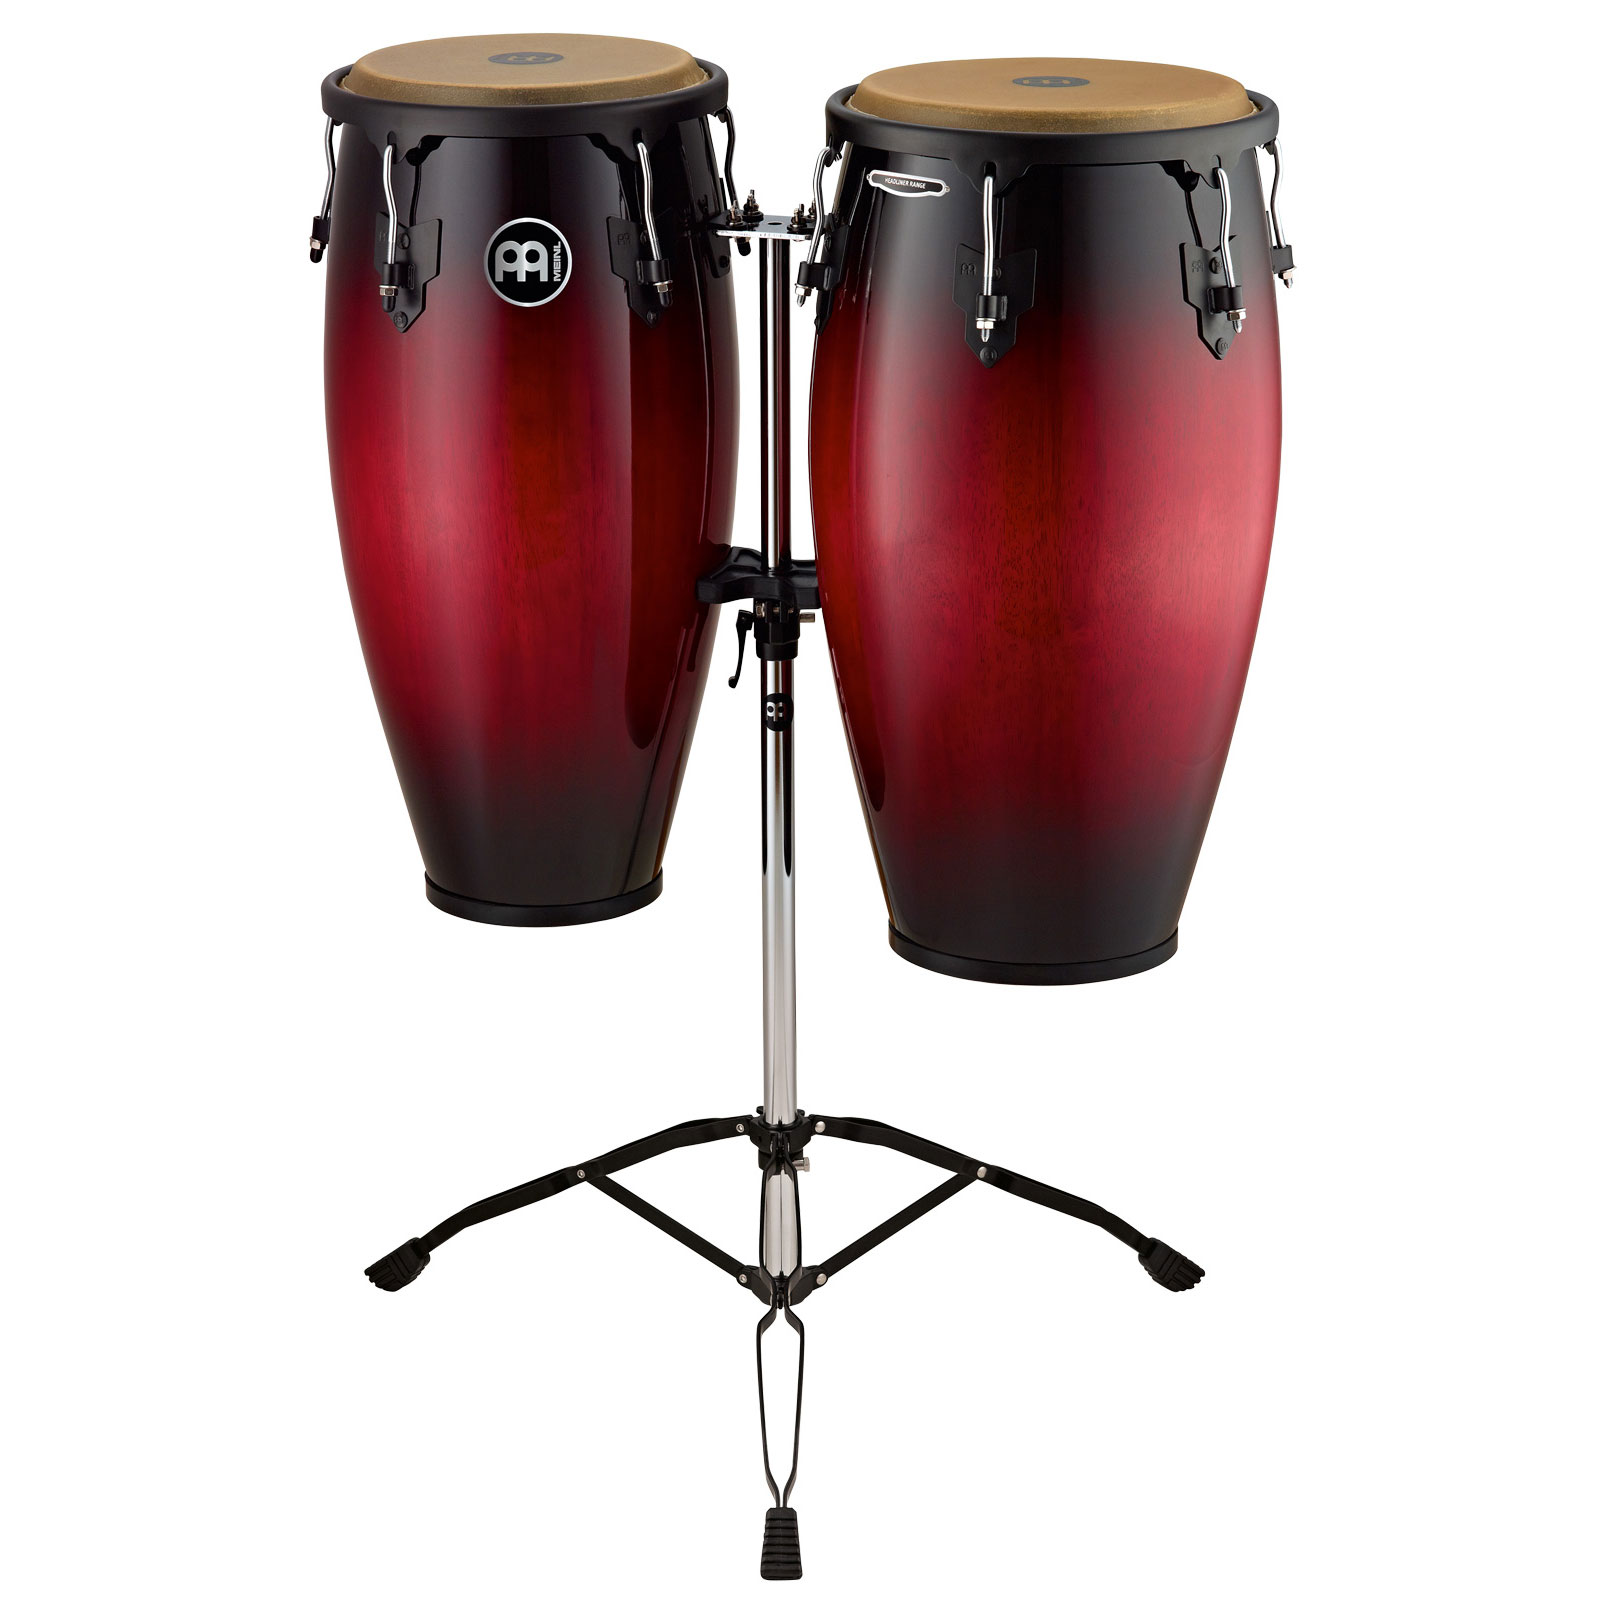 "Meinl 11"" & 12"" Headliner Series Conga Set in Wine Red Burst with Stand"